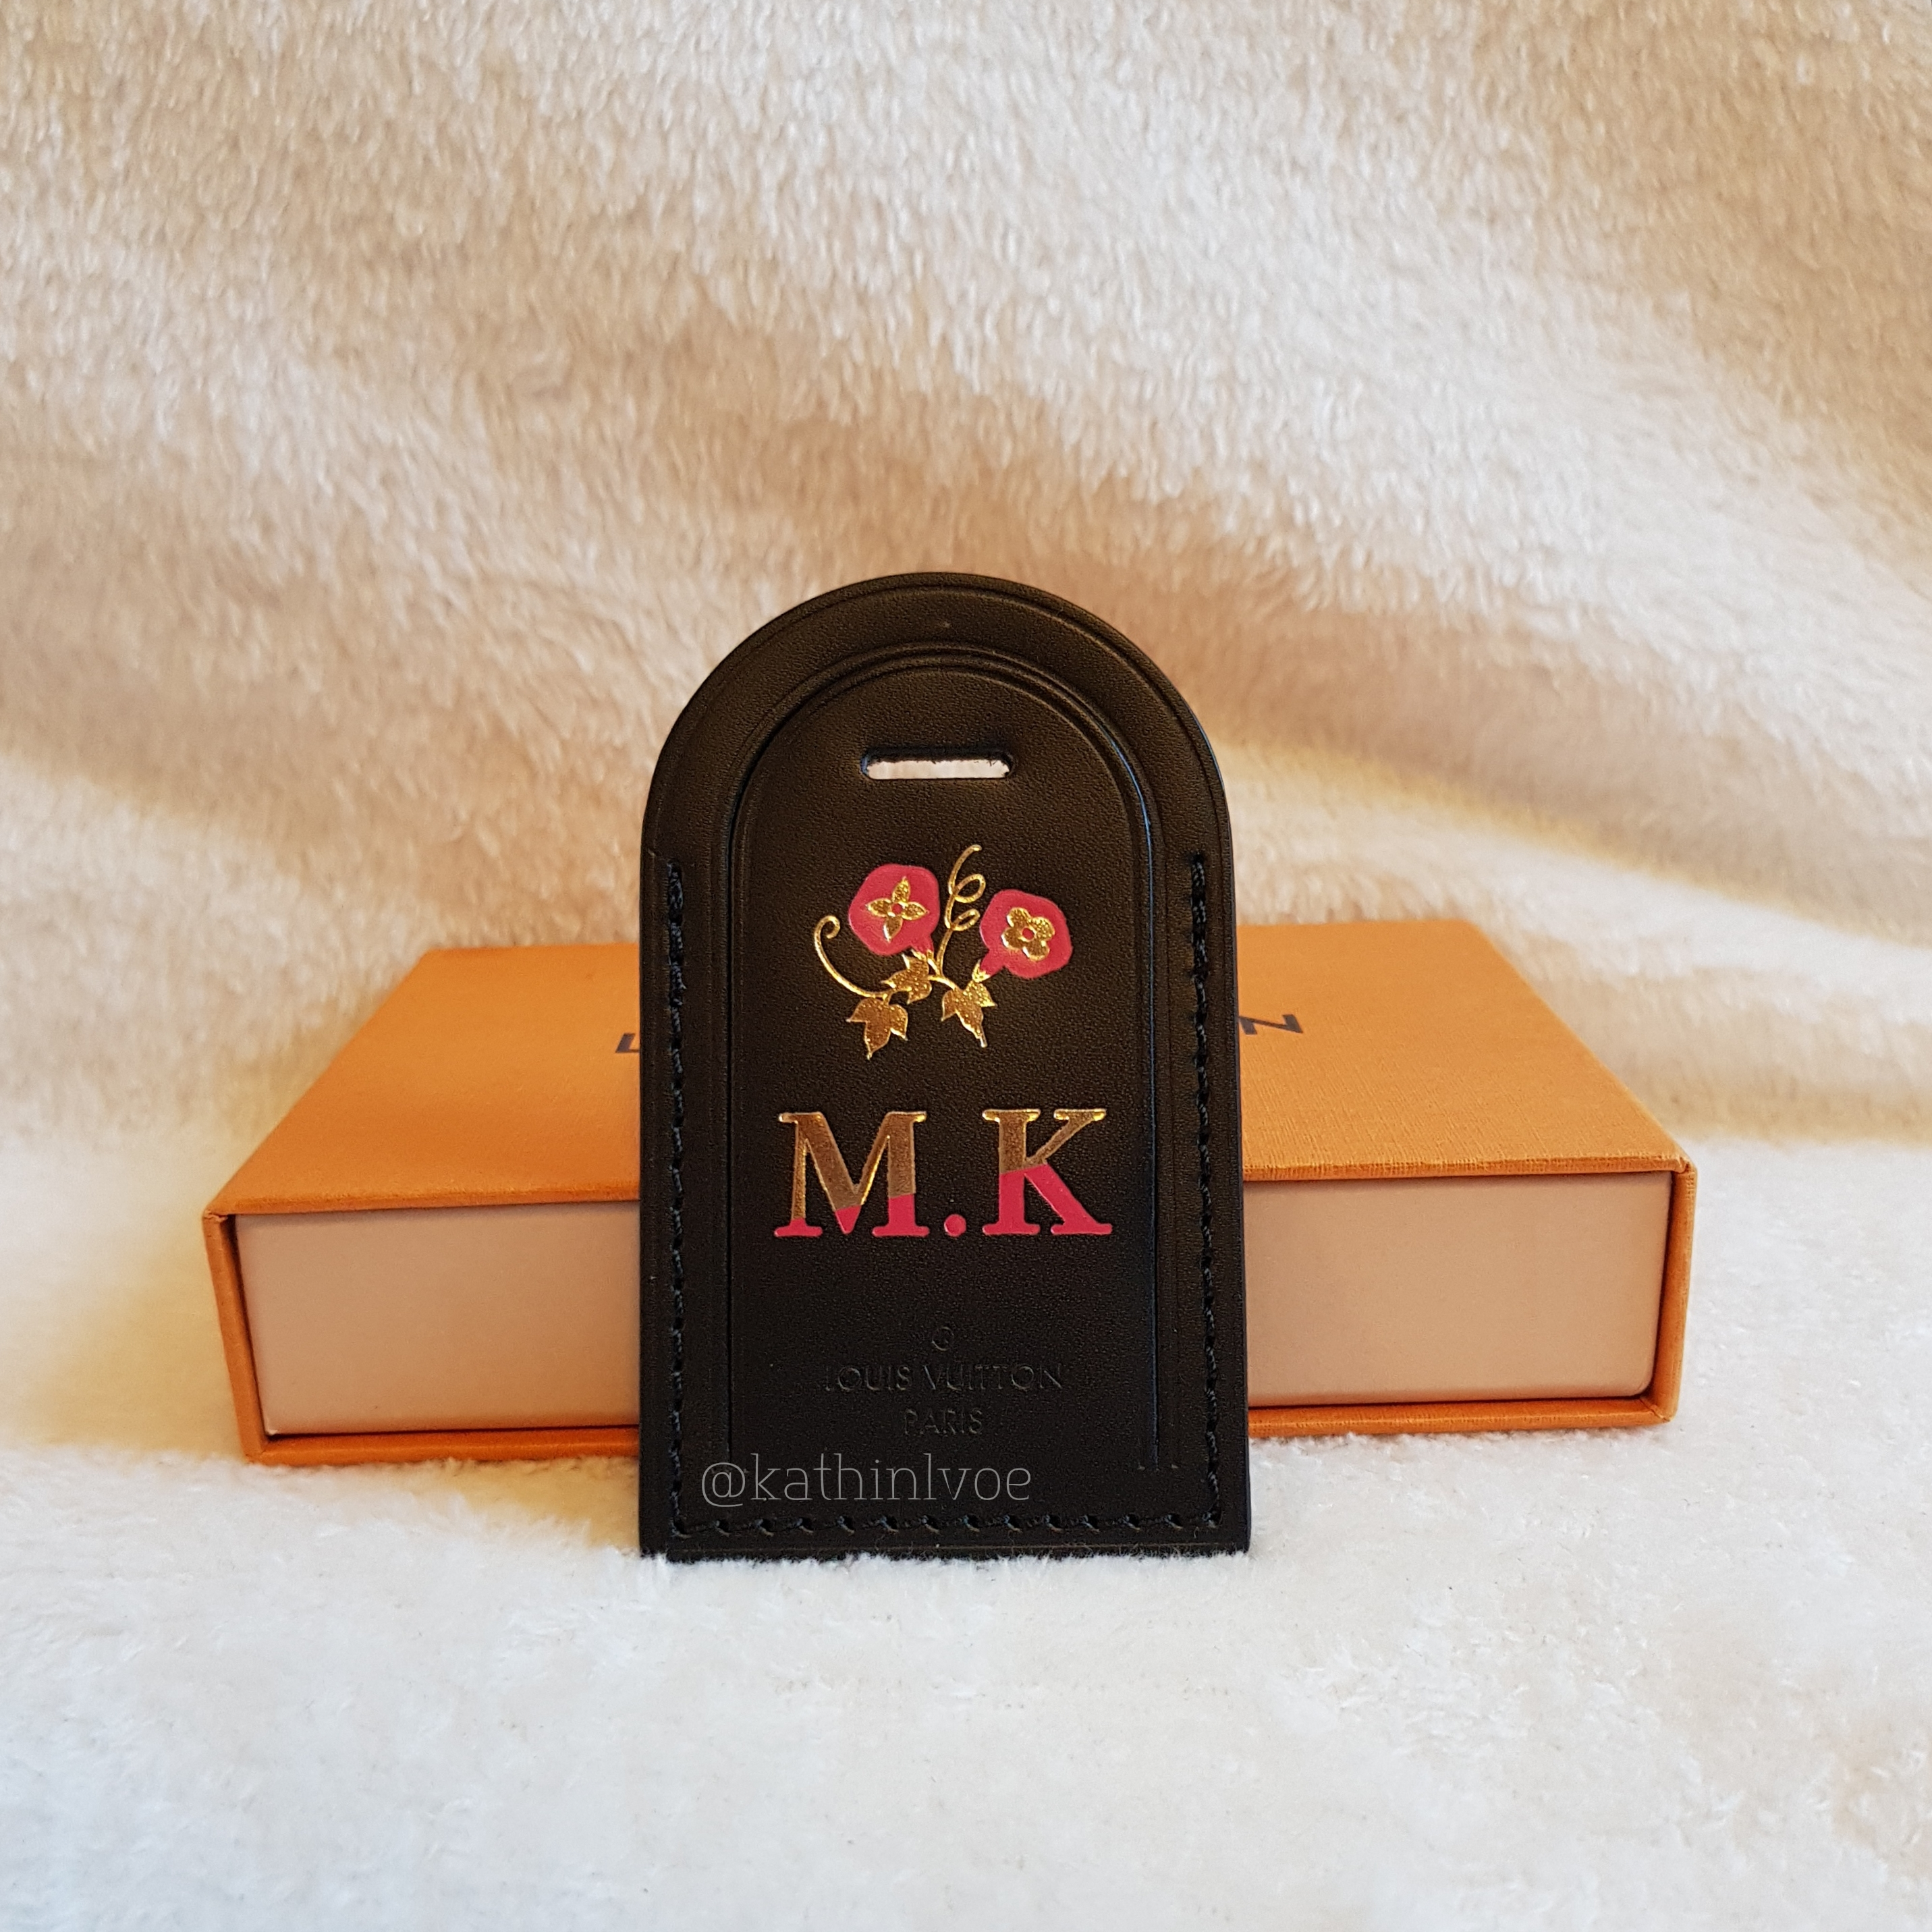 c74cff830321 Kathleen.blogg.no – My Louis Vuitton luggage tag collection and ...